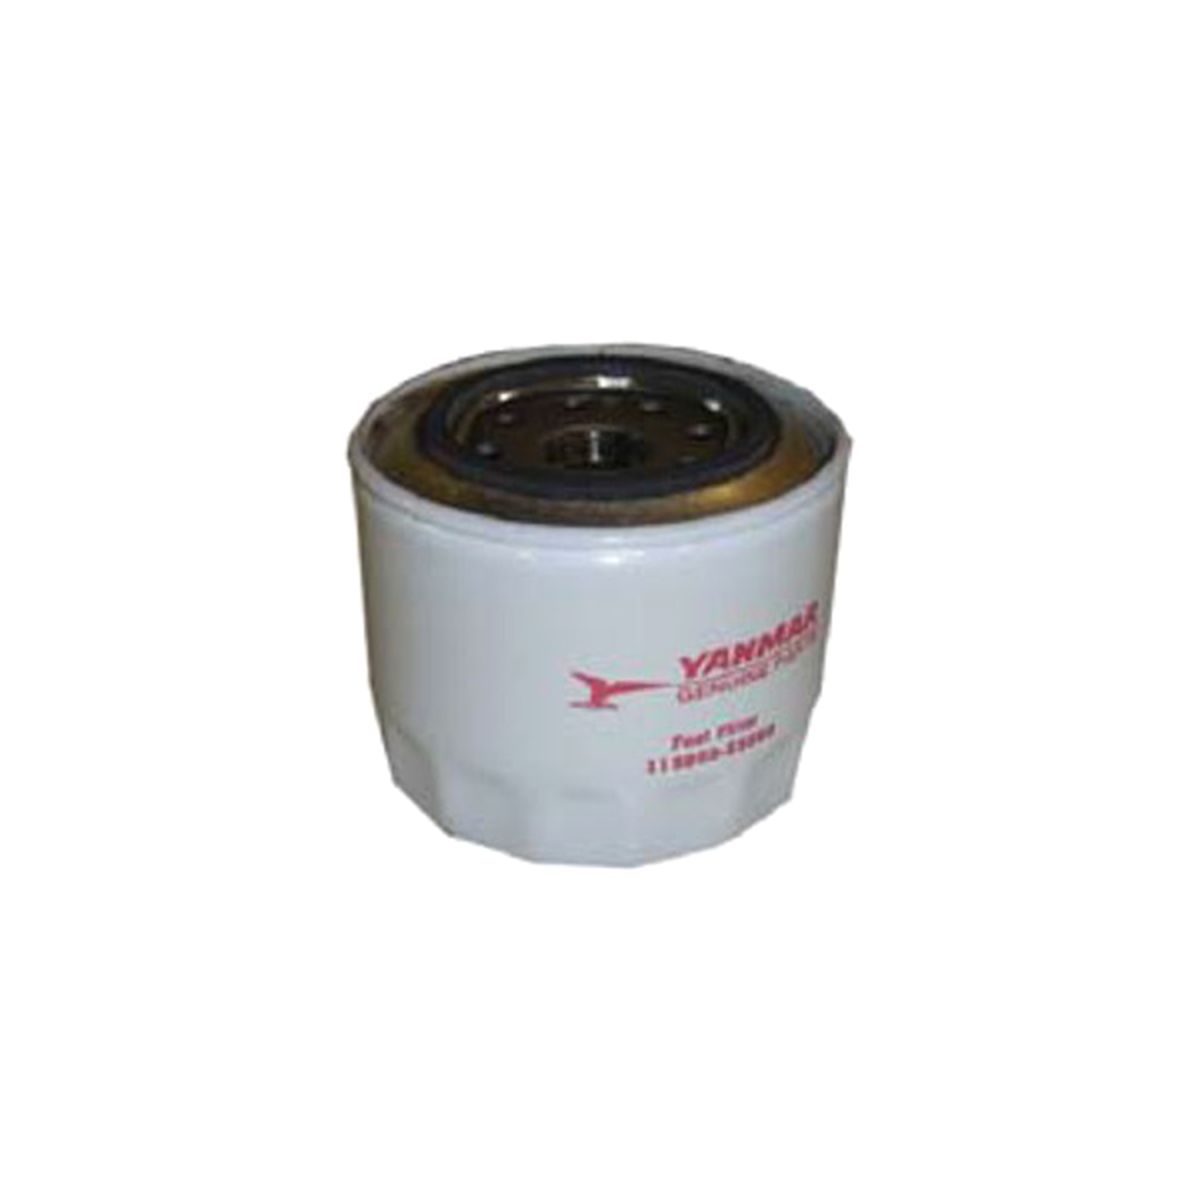 901813 Dixie Chopper Fuel Filter